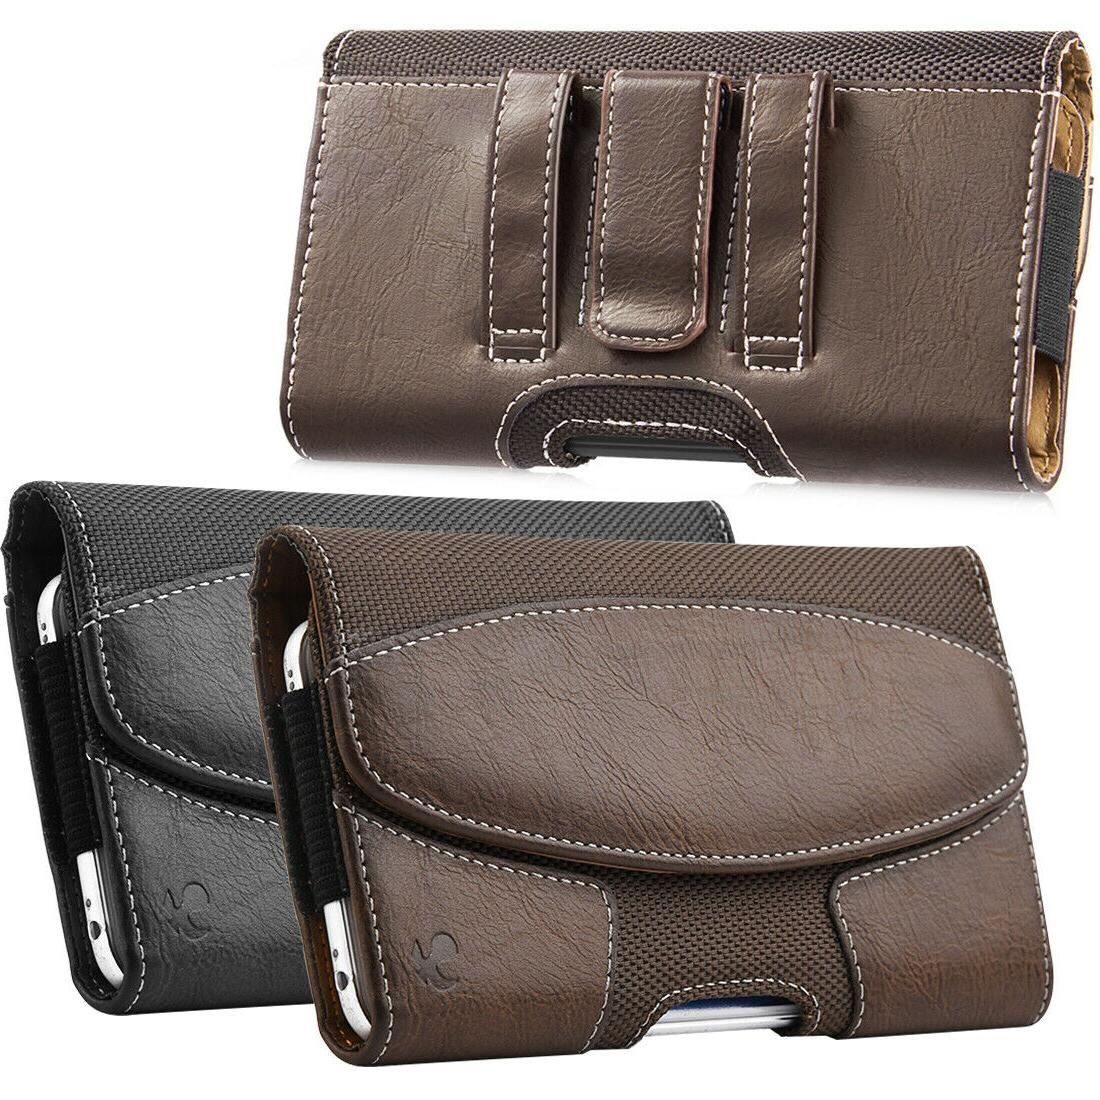 wallet horizontal heavy duty cell phone pouch